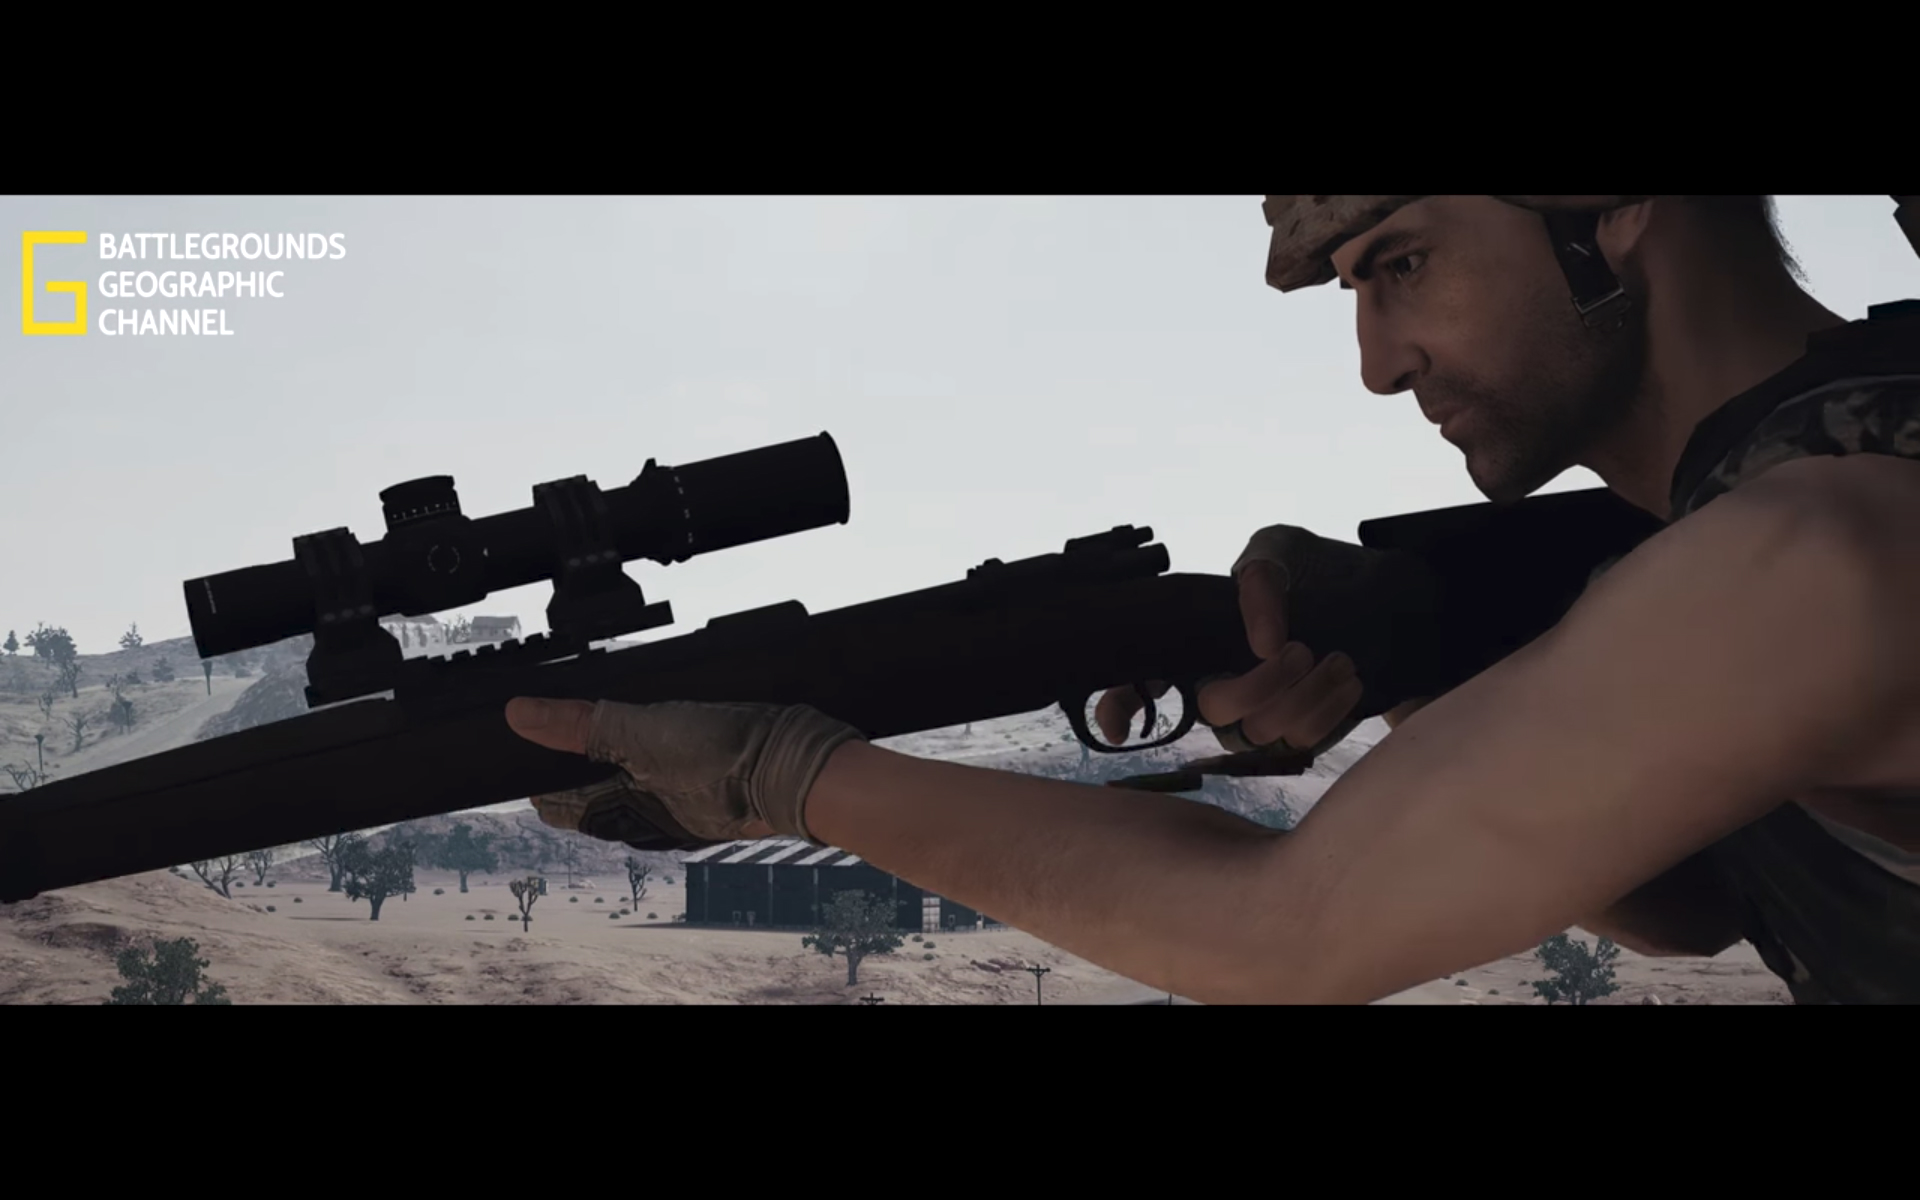 This PUBG nature documentary uses the game's replay system to hilarious effect